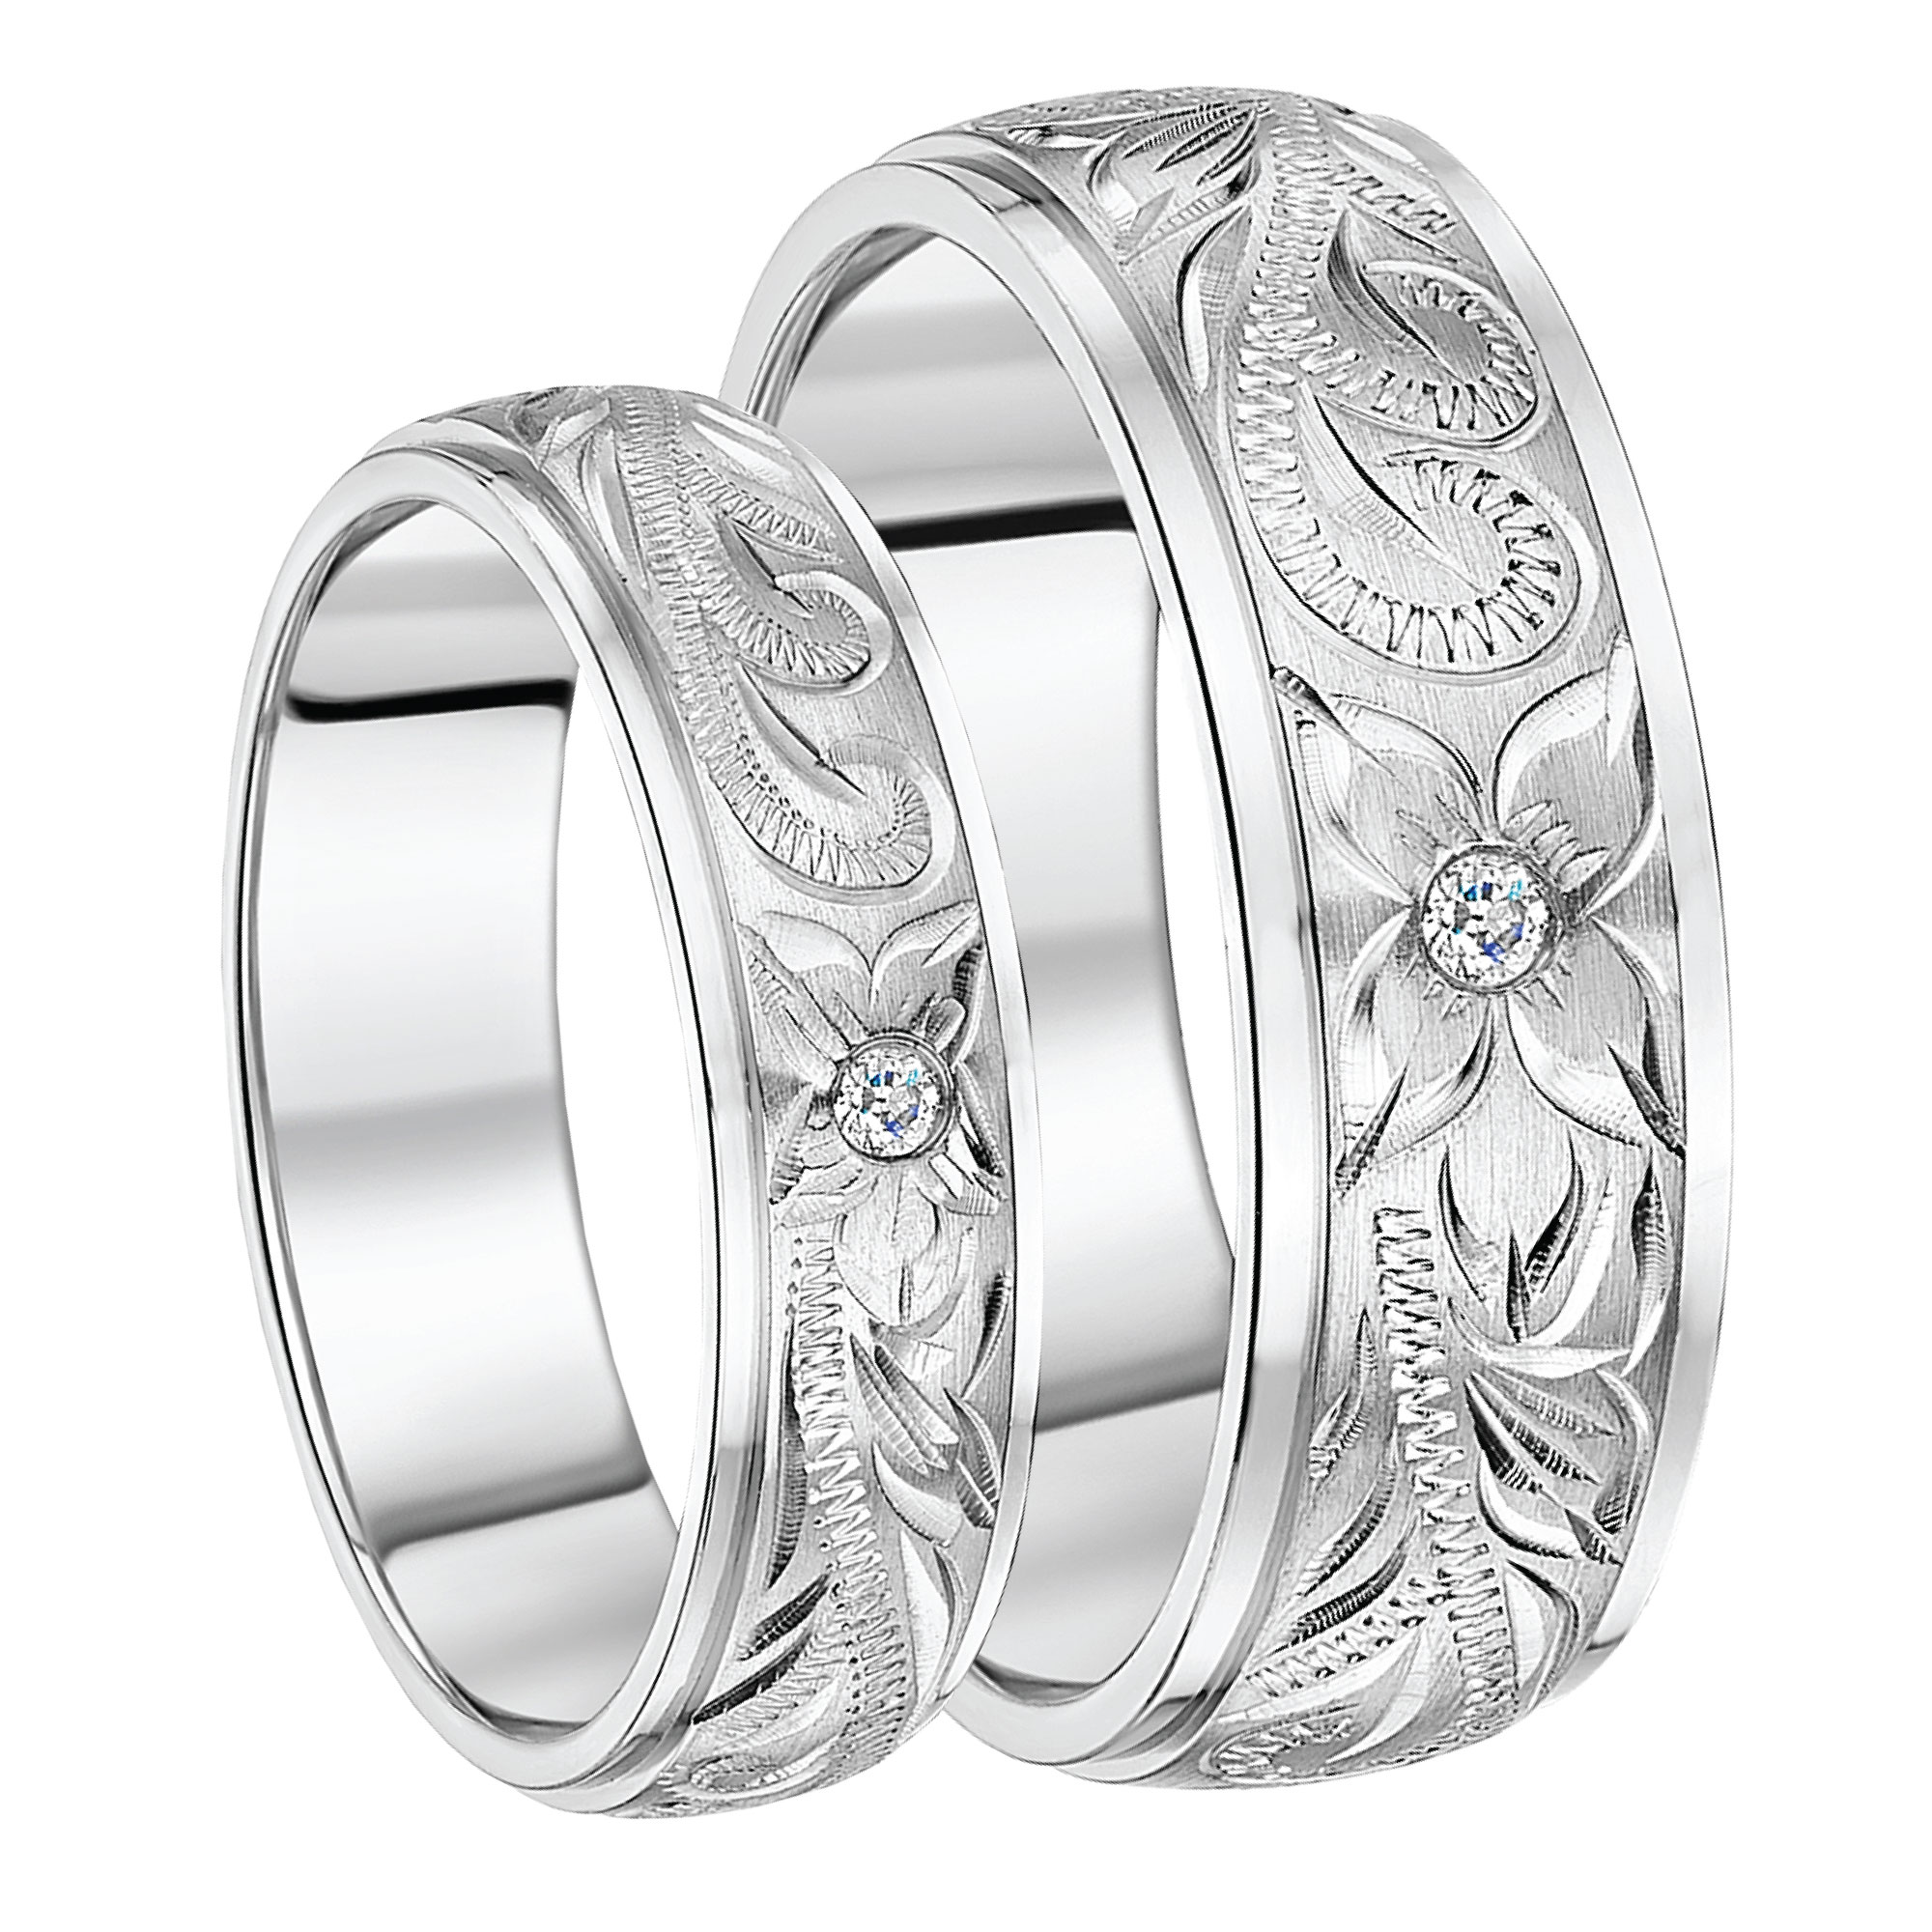 toned customized wedding two ambrosia matching vintage engraved band products rings tone